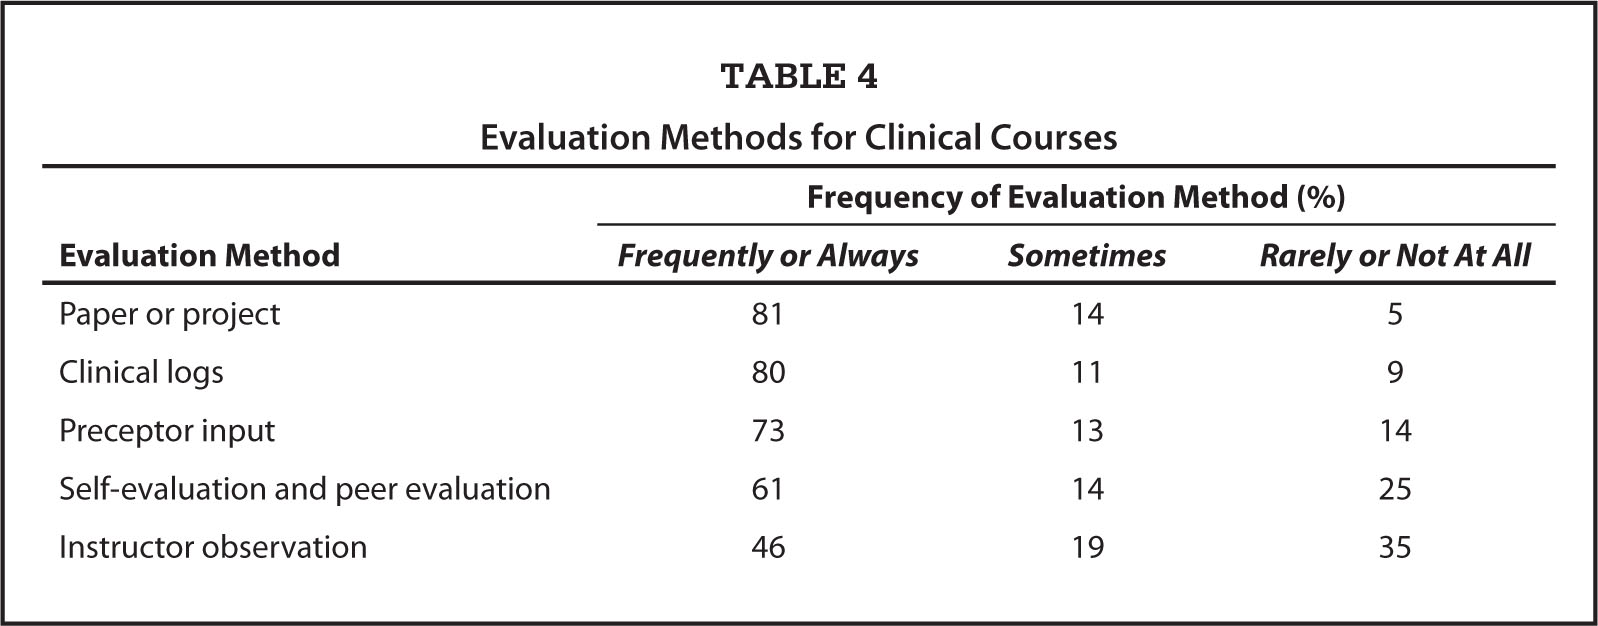 Evaluation Methods for Clinical Courses